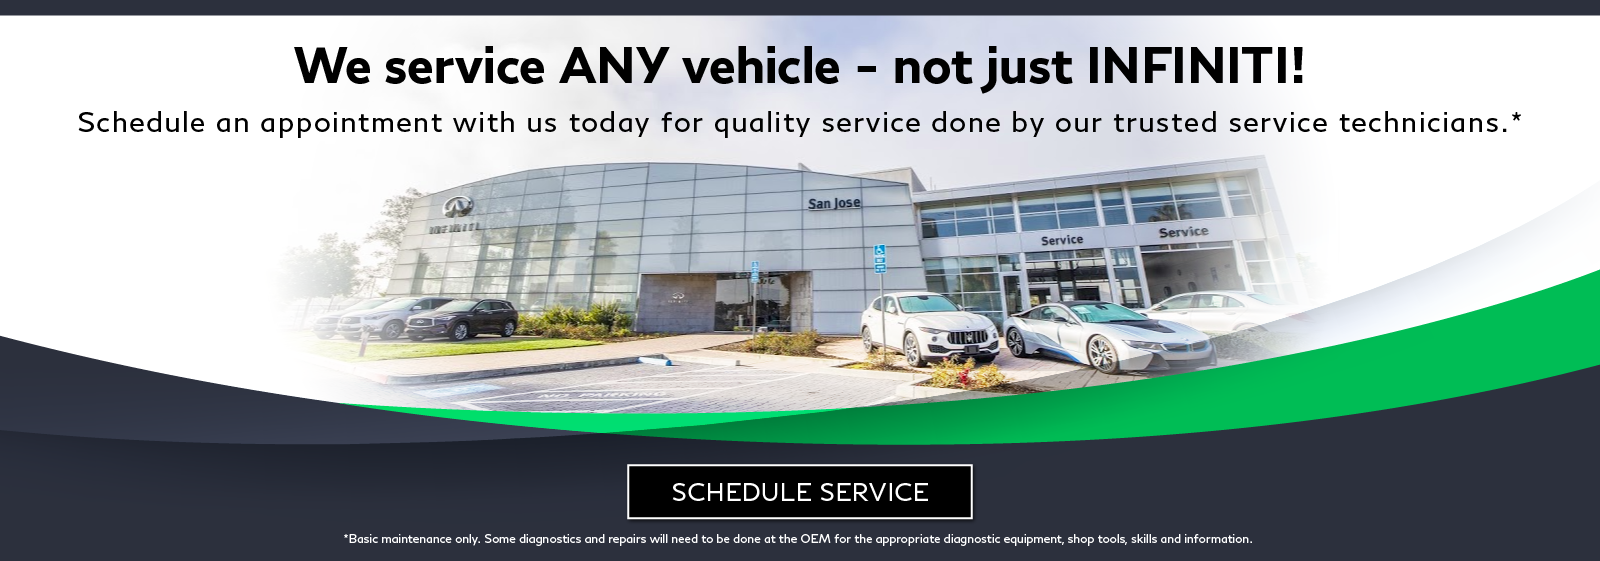 We service any vehicle - not just INFINITI! Click to schedule service.